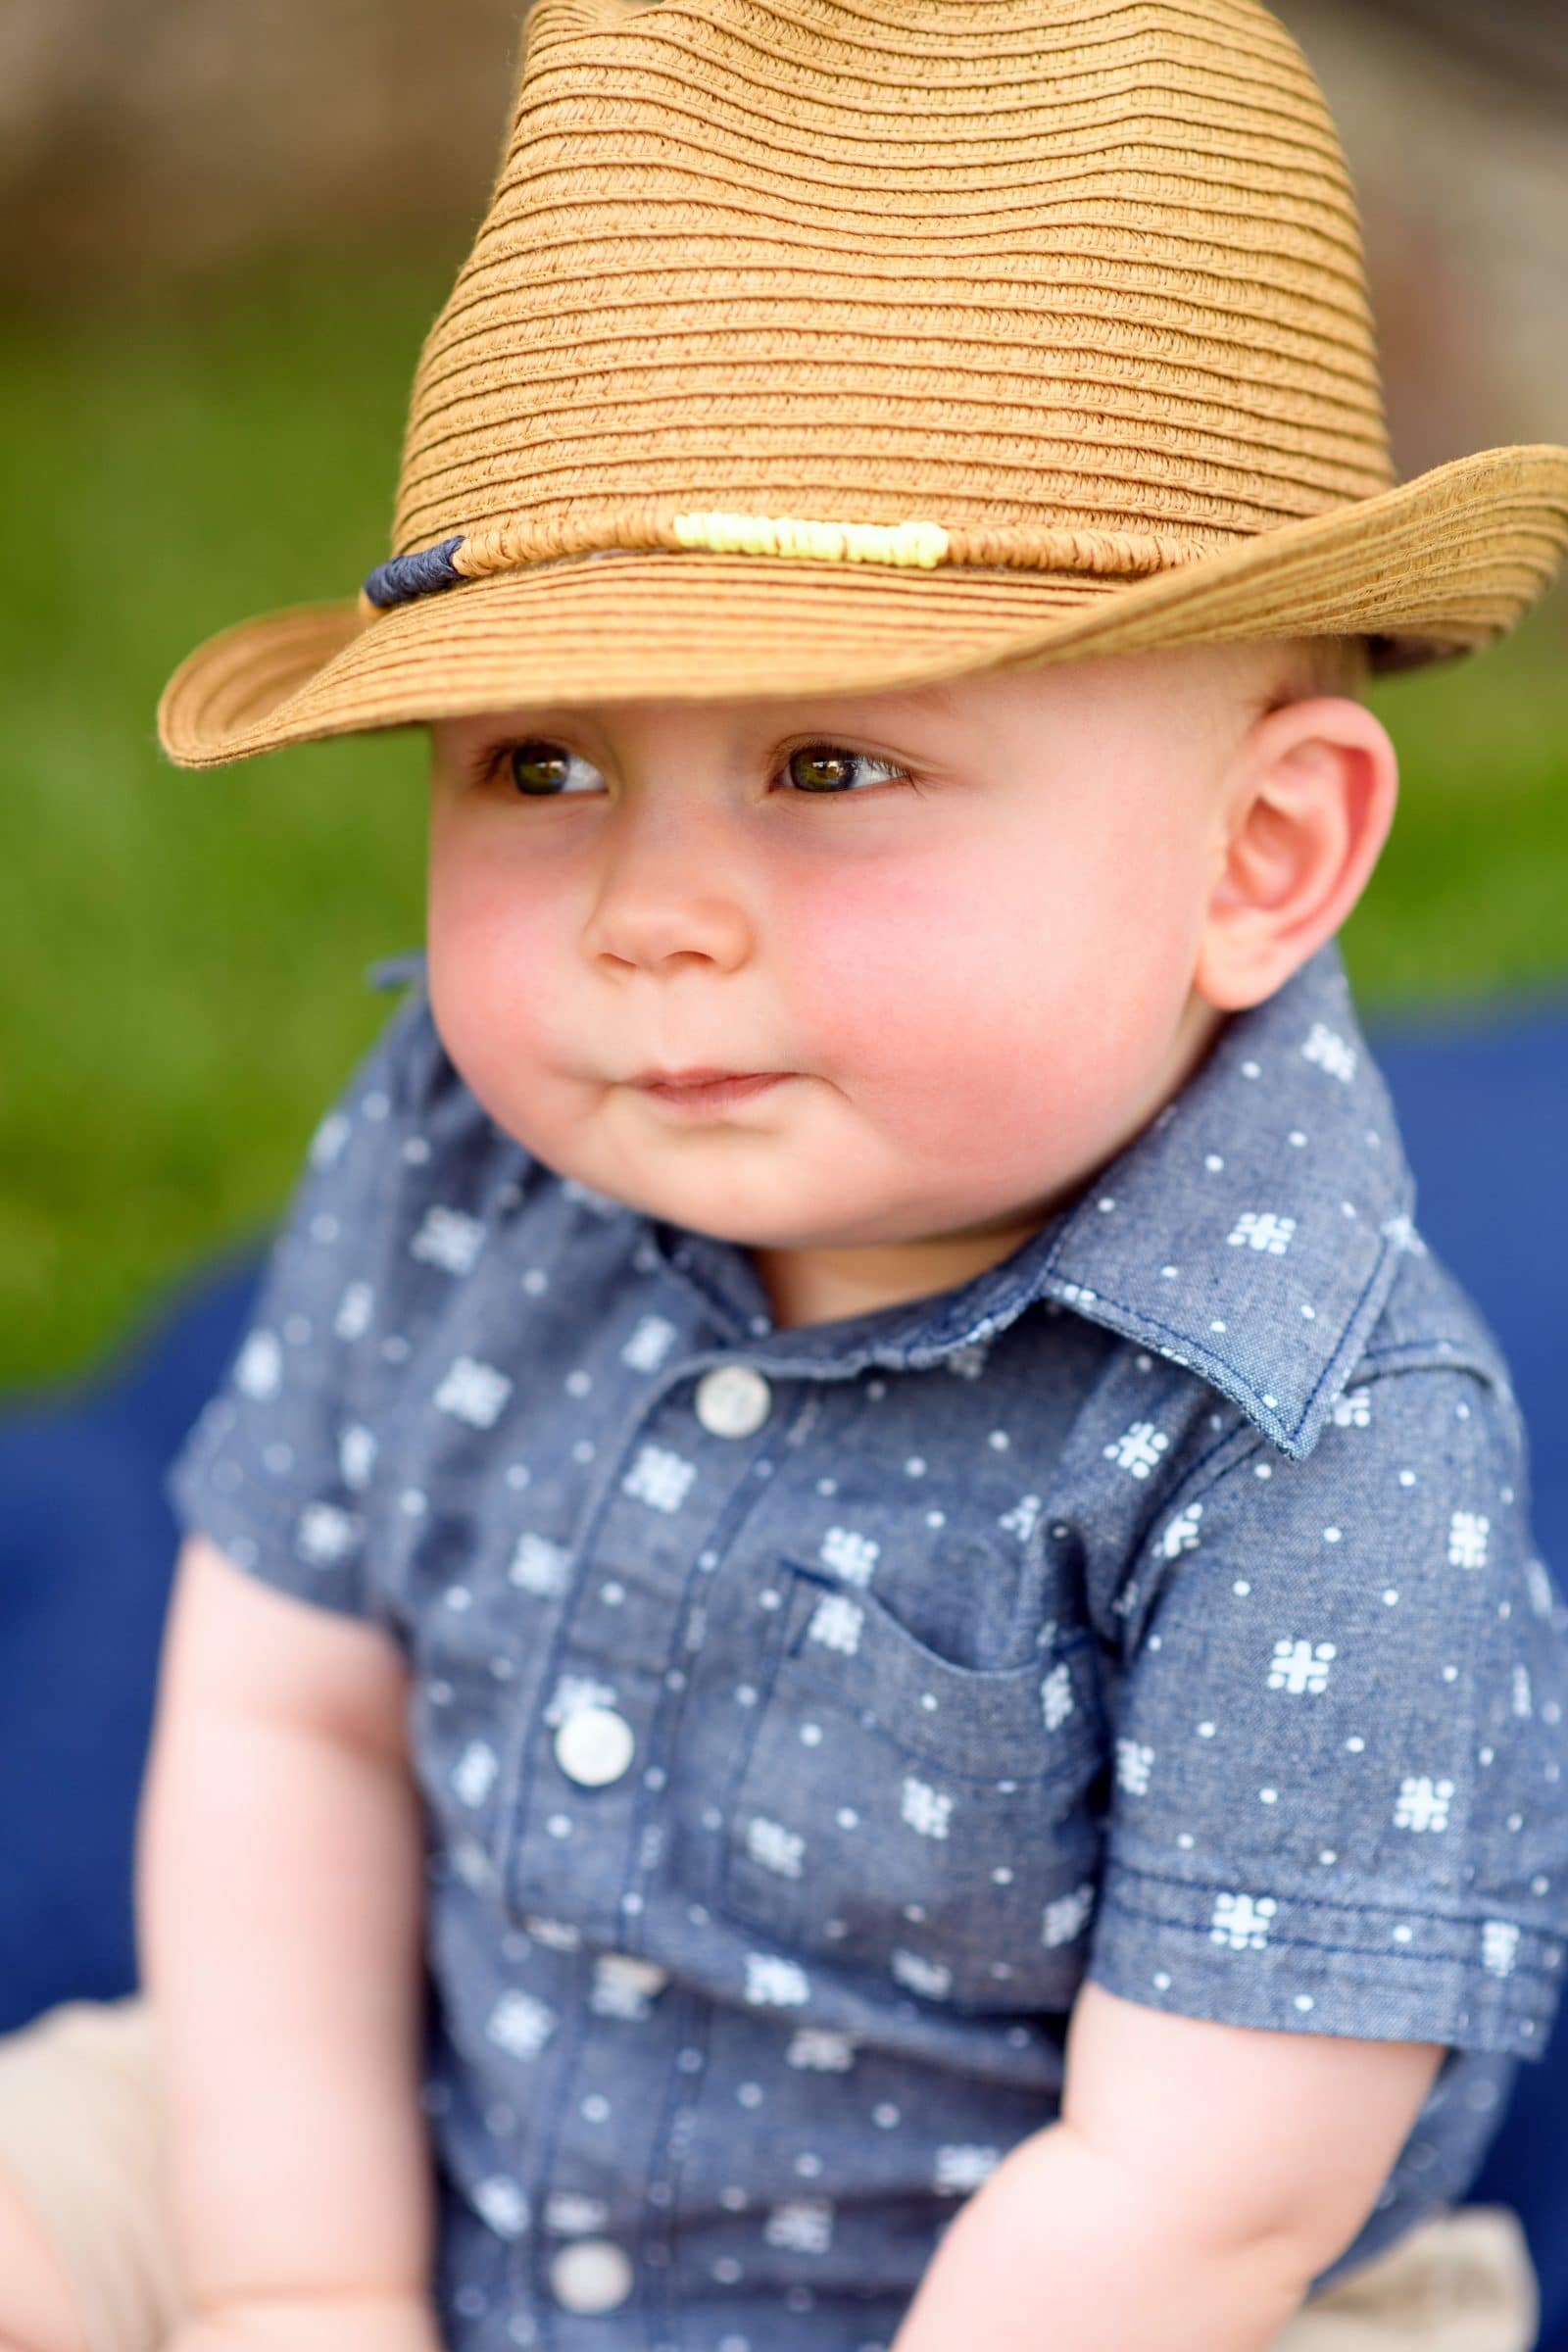 small baby in a cute, stylin hat